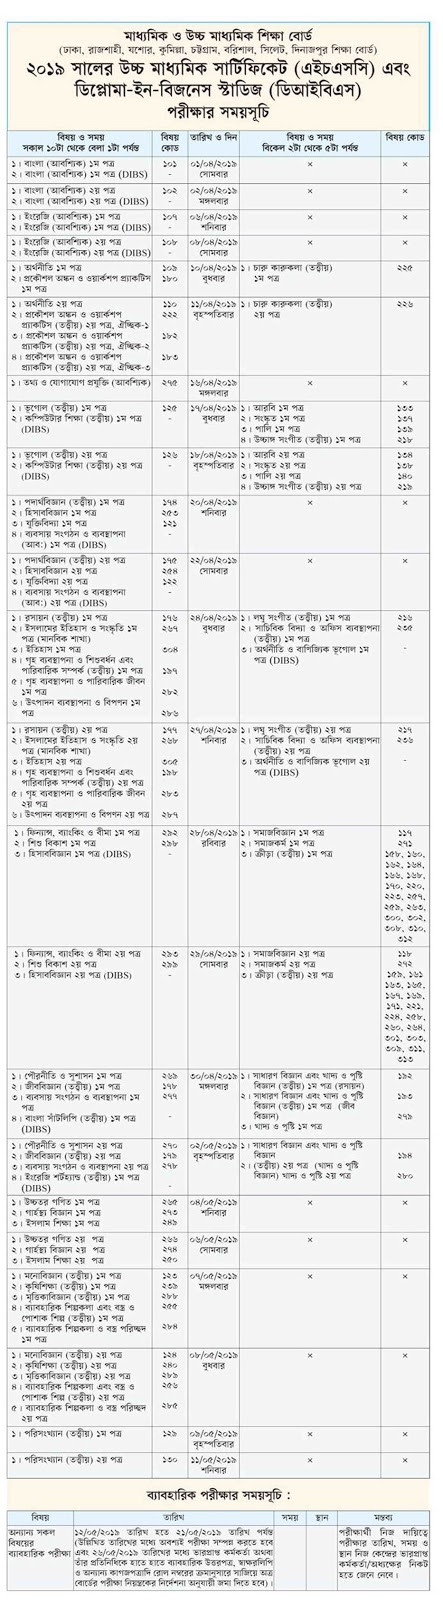 HSC, DIBS and Alim Examination routine 2019